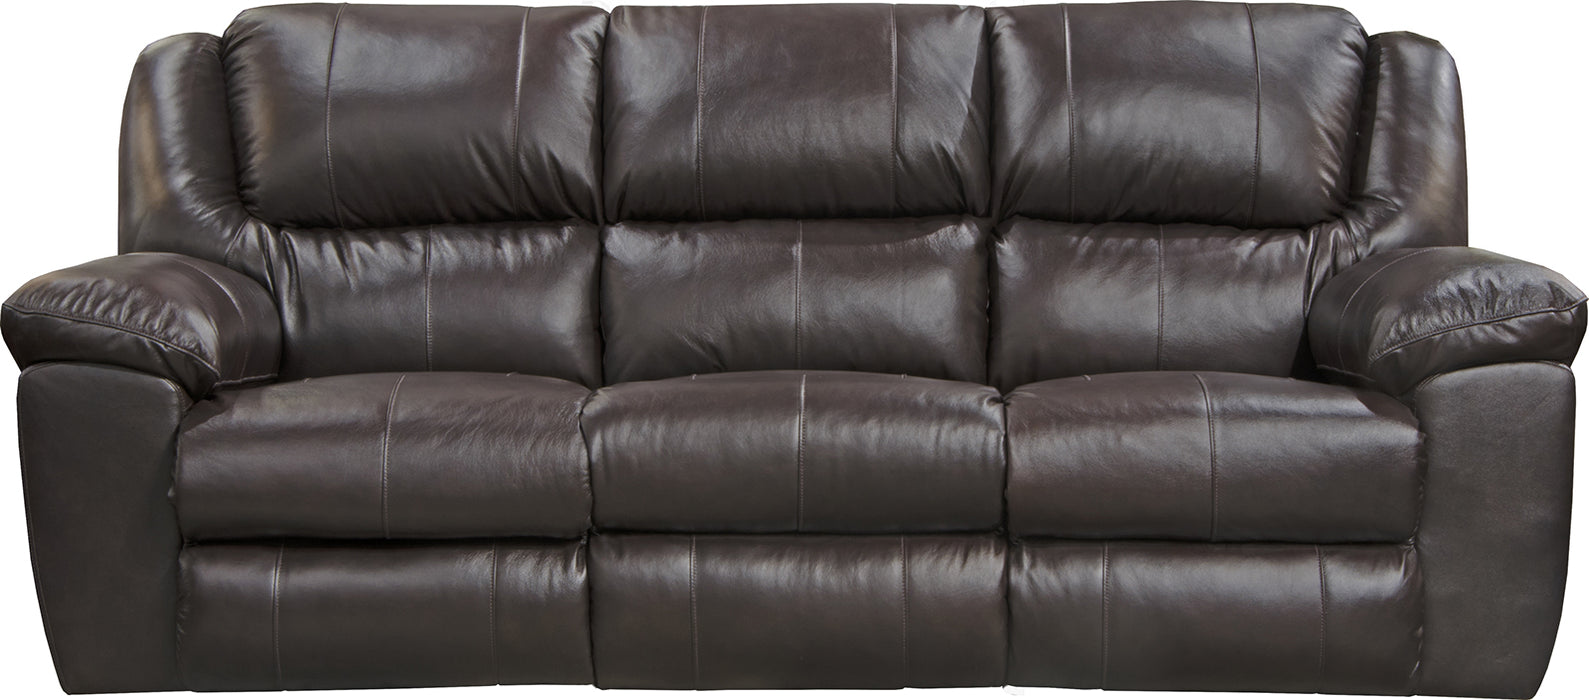 Catnapper Furniture Transformer II Ultimate Sofa with 3 Recliners and Drop Down Table in Chocolate image